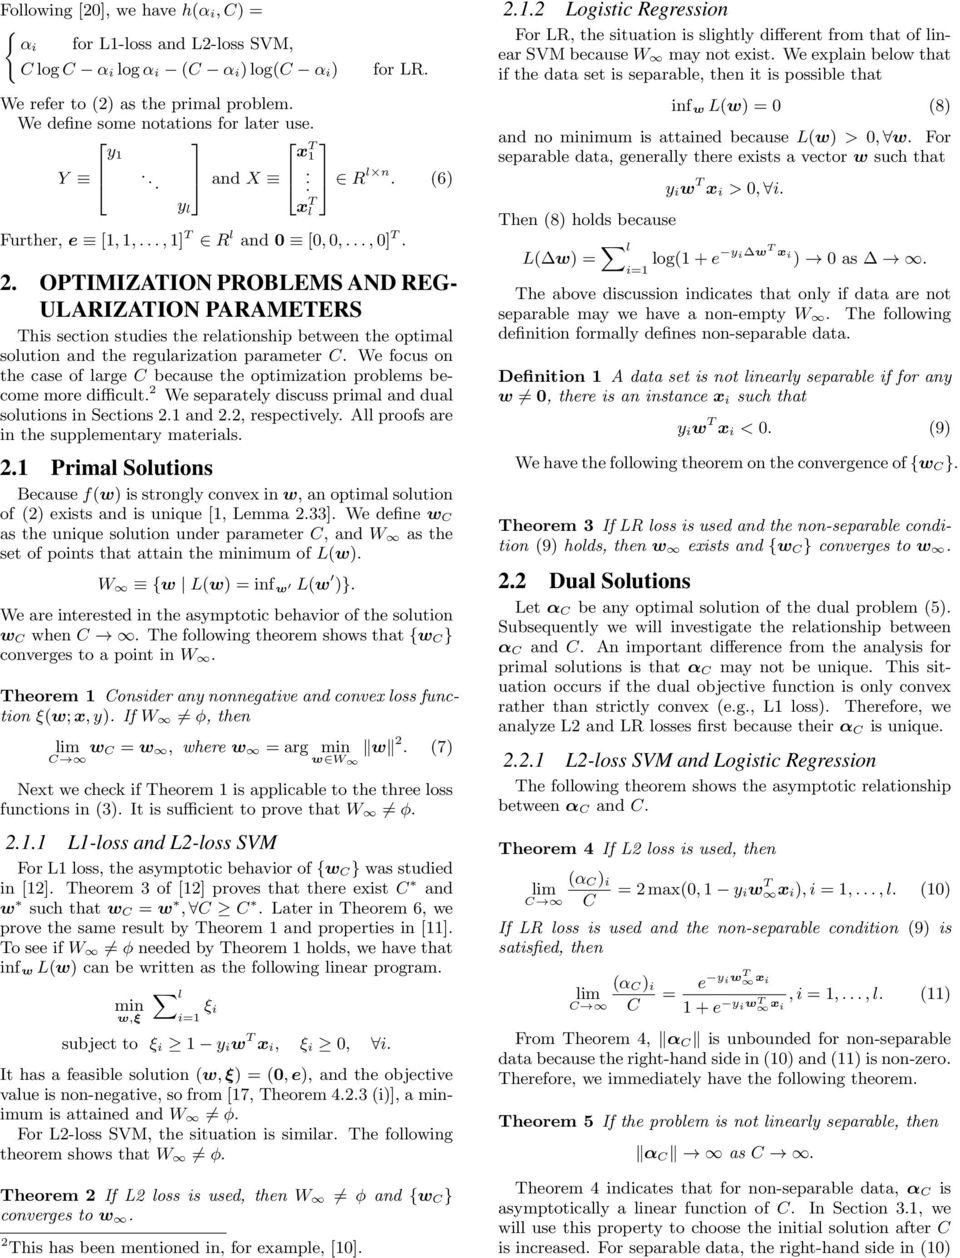 OPTIMIZATION PROBLEMS AND REG- ULARIZATION PARAMETERS This section studies the relationship between the optimal solution and the regularization parameter C.